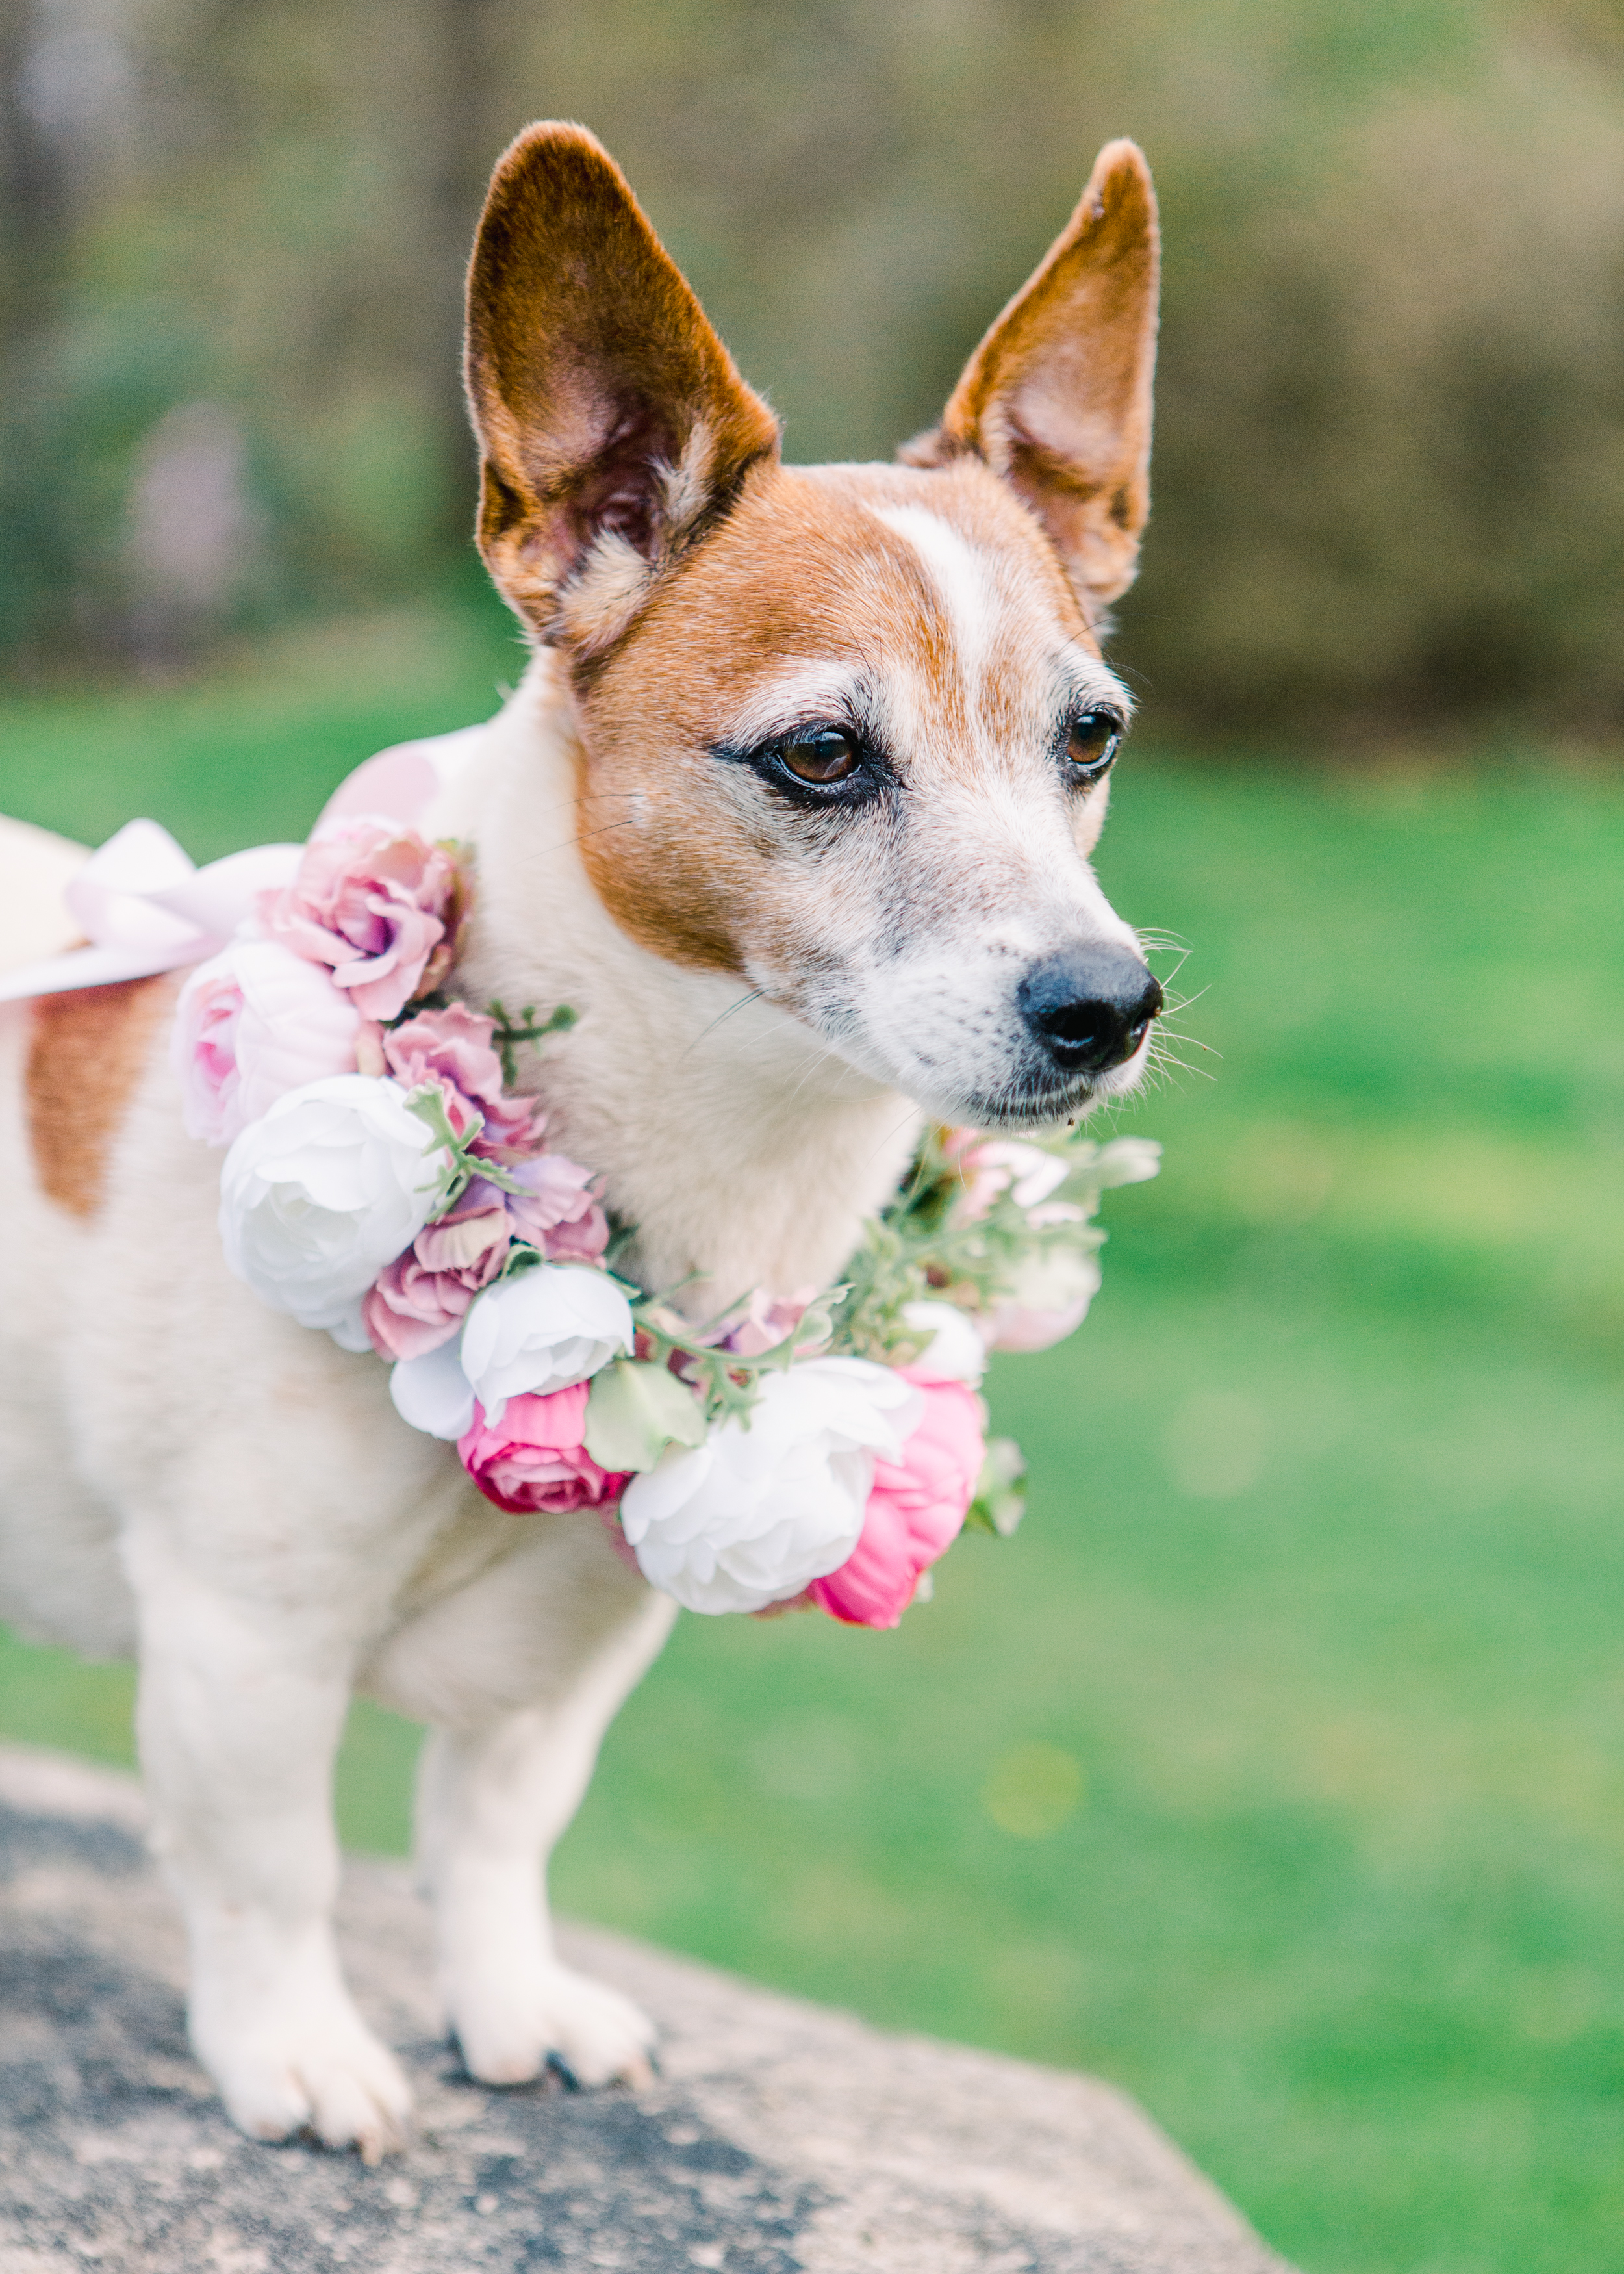 Small Irish Jack Russell Terrier standing on a rock in spring wearing a flower collar of pink, white and lavender flowers.